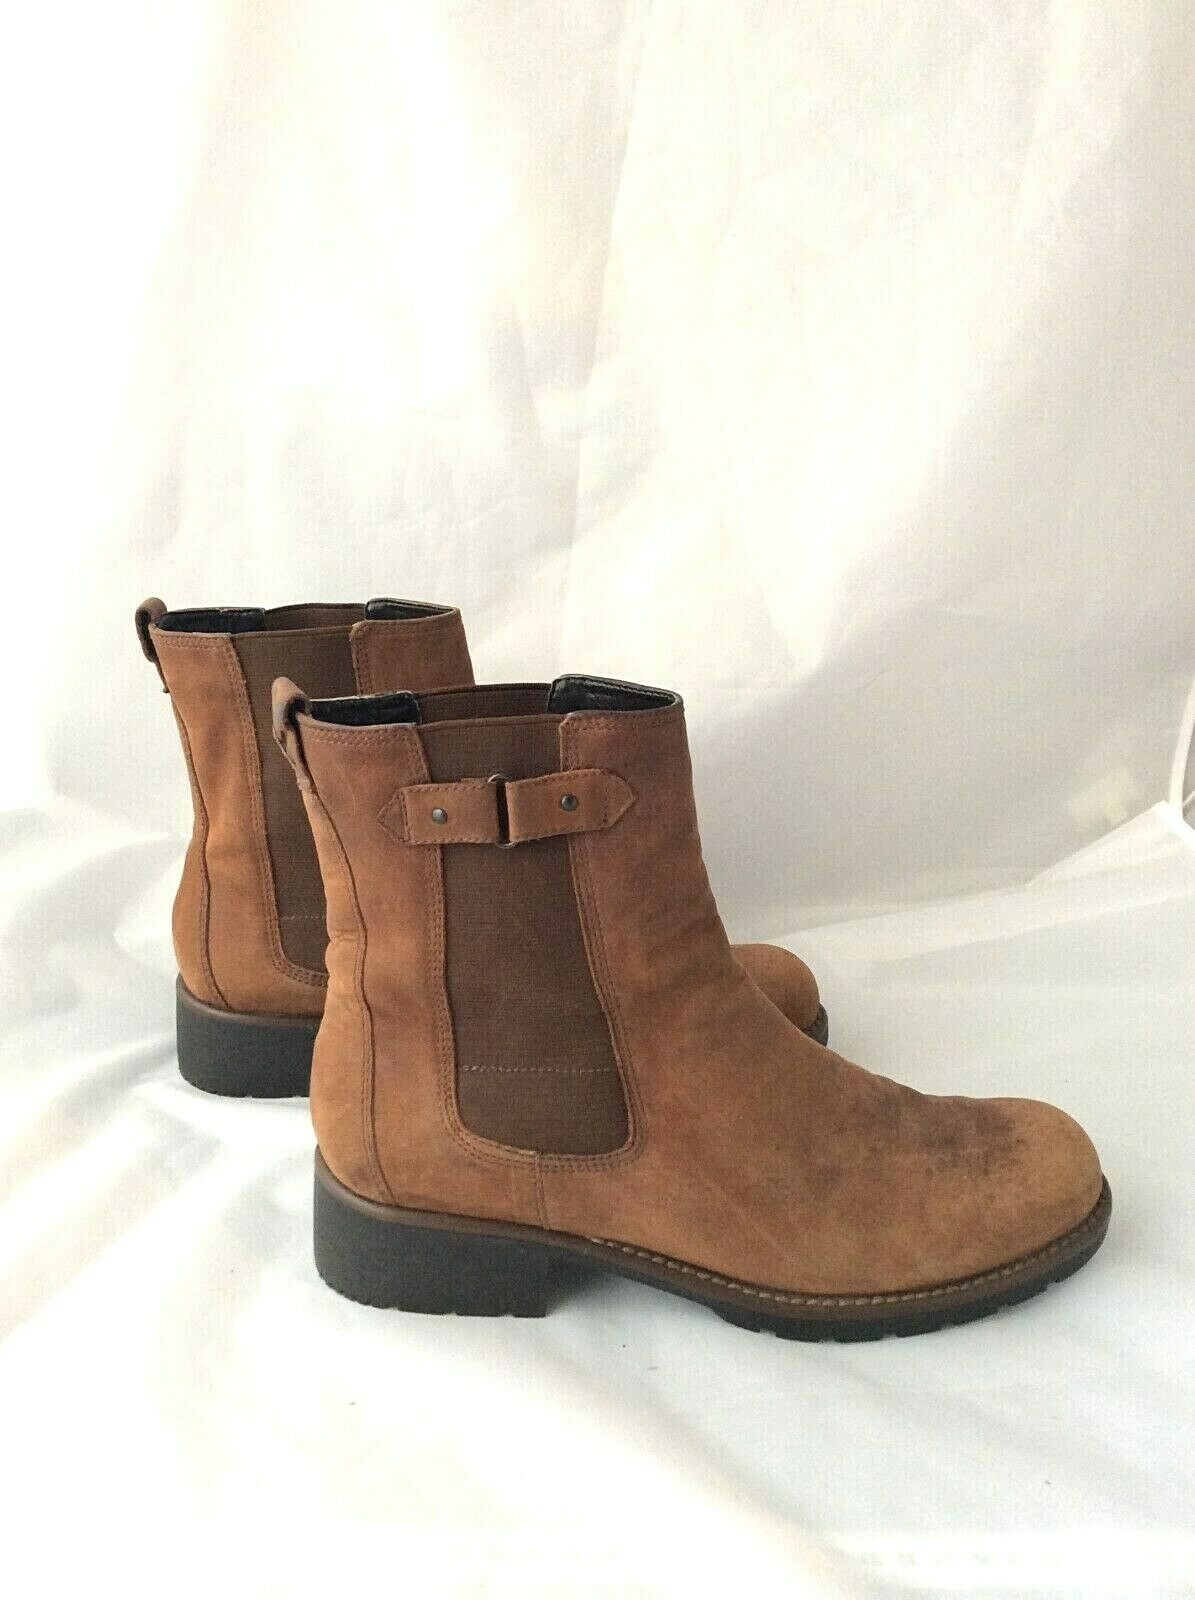 Clarks Mens Chelsea Nubuck Leather Suede Boots Size 8 Casual Pull On Tan